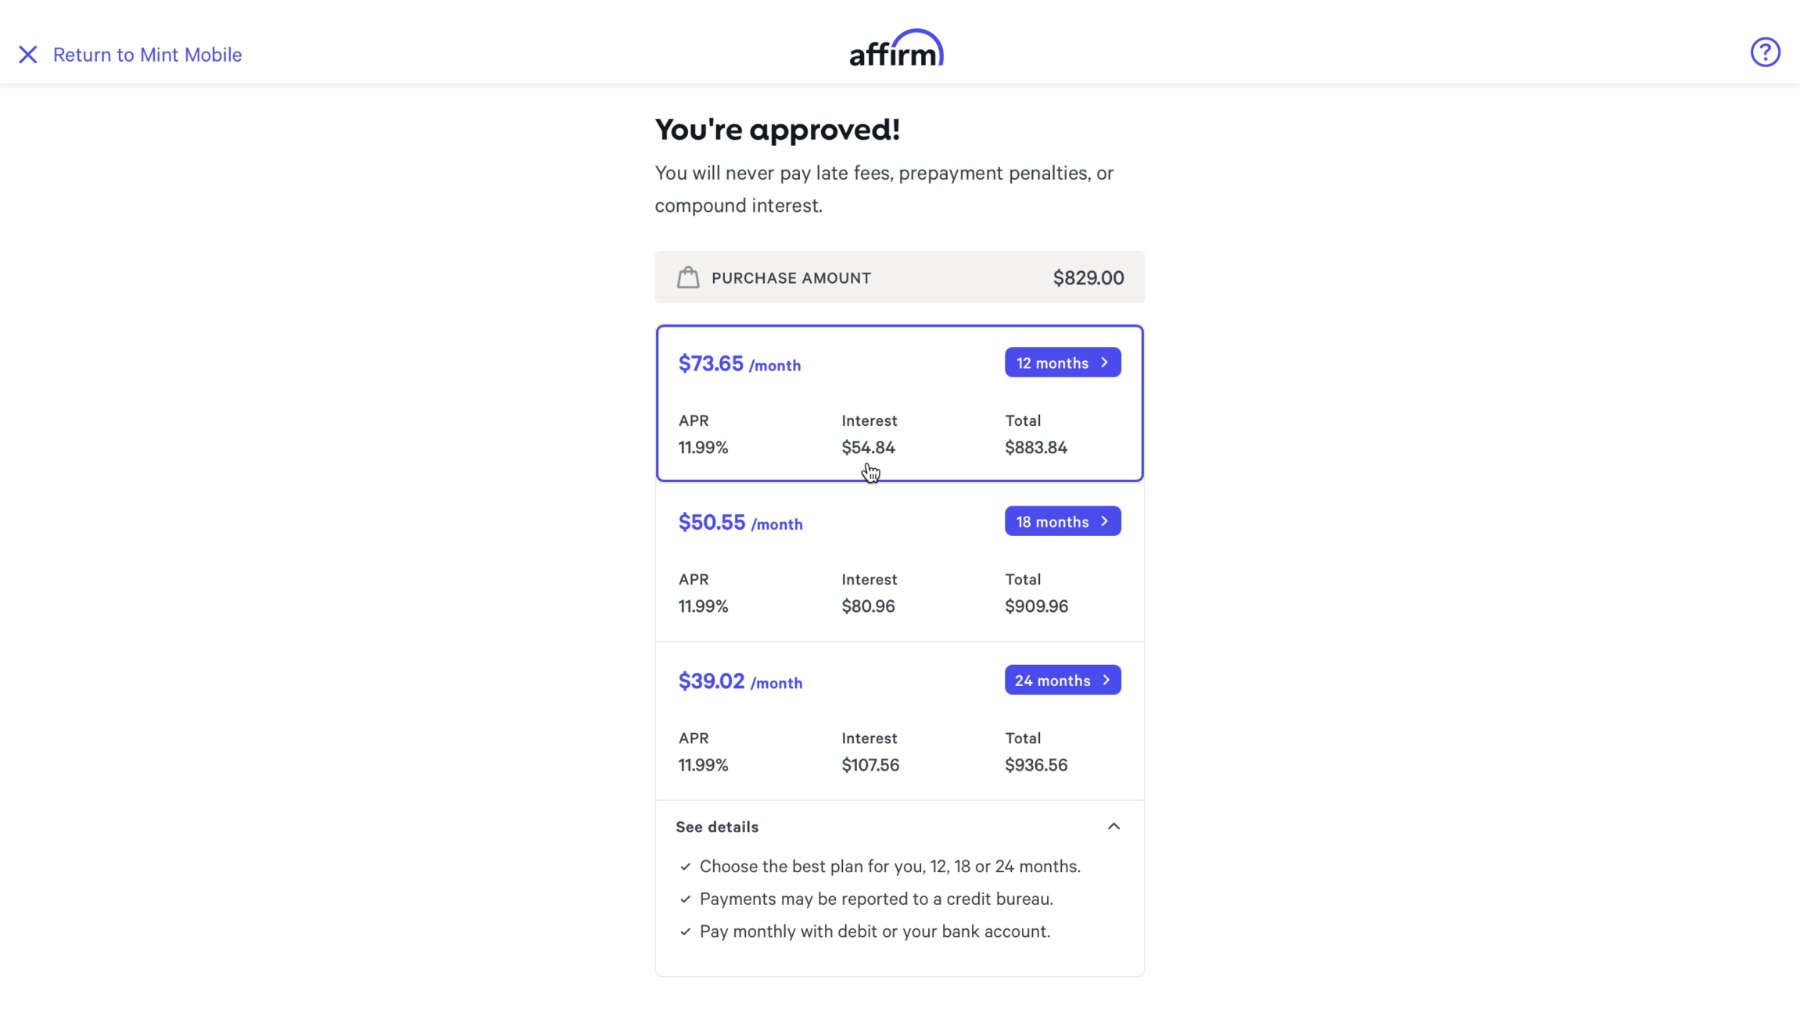 Affirm financing options with Mint Mobile iPhone 12